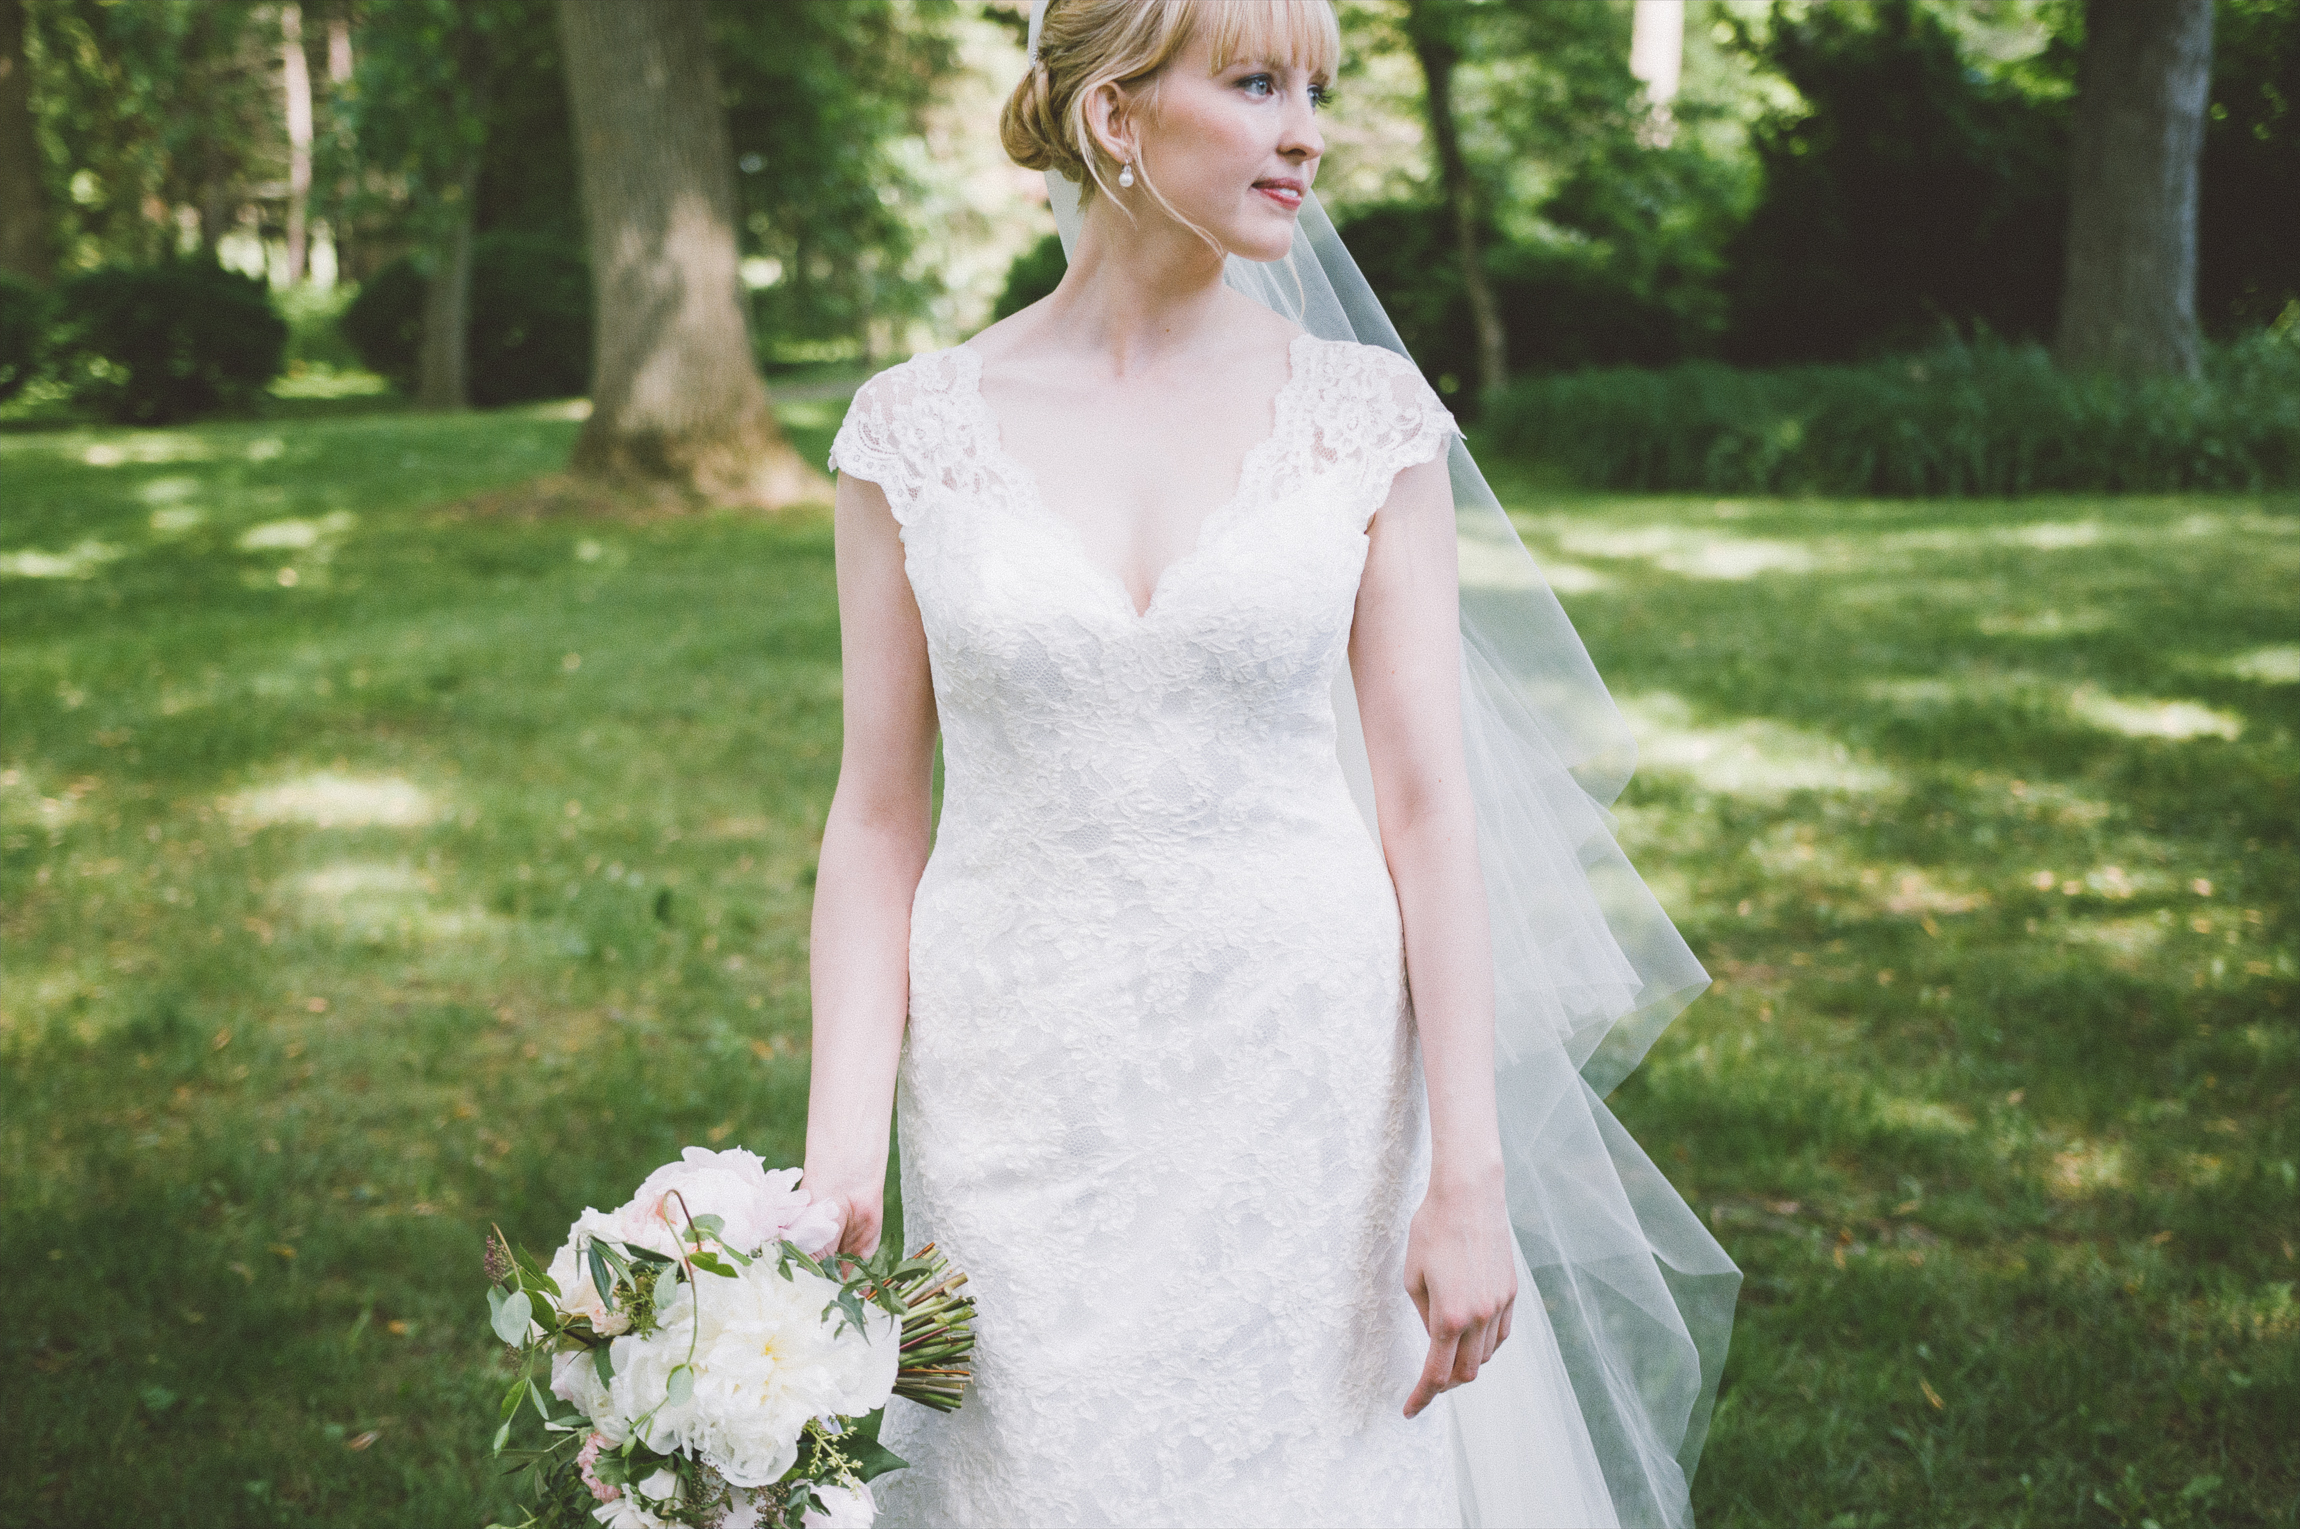 amanda cowley events niagara wedding planner kurtz orchard bride gown peonies blush